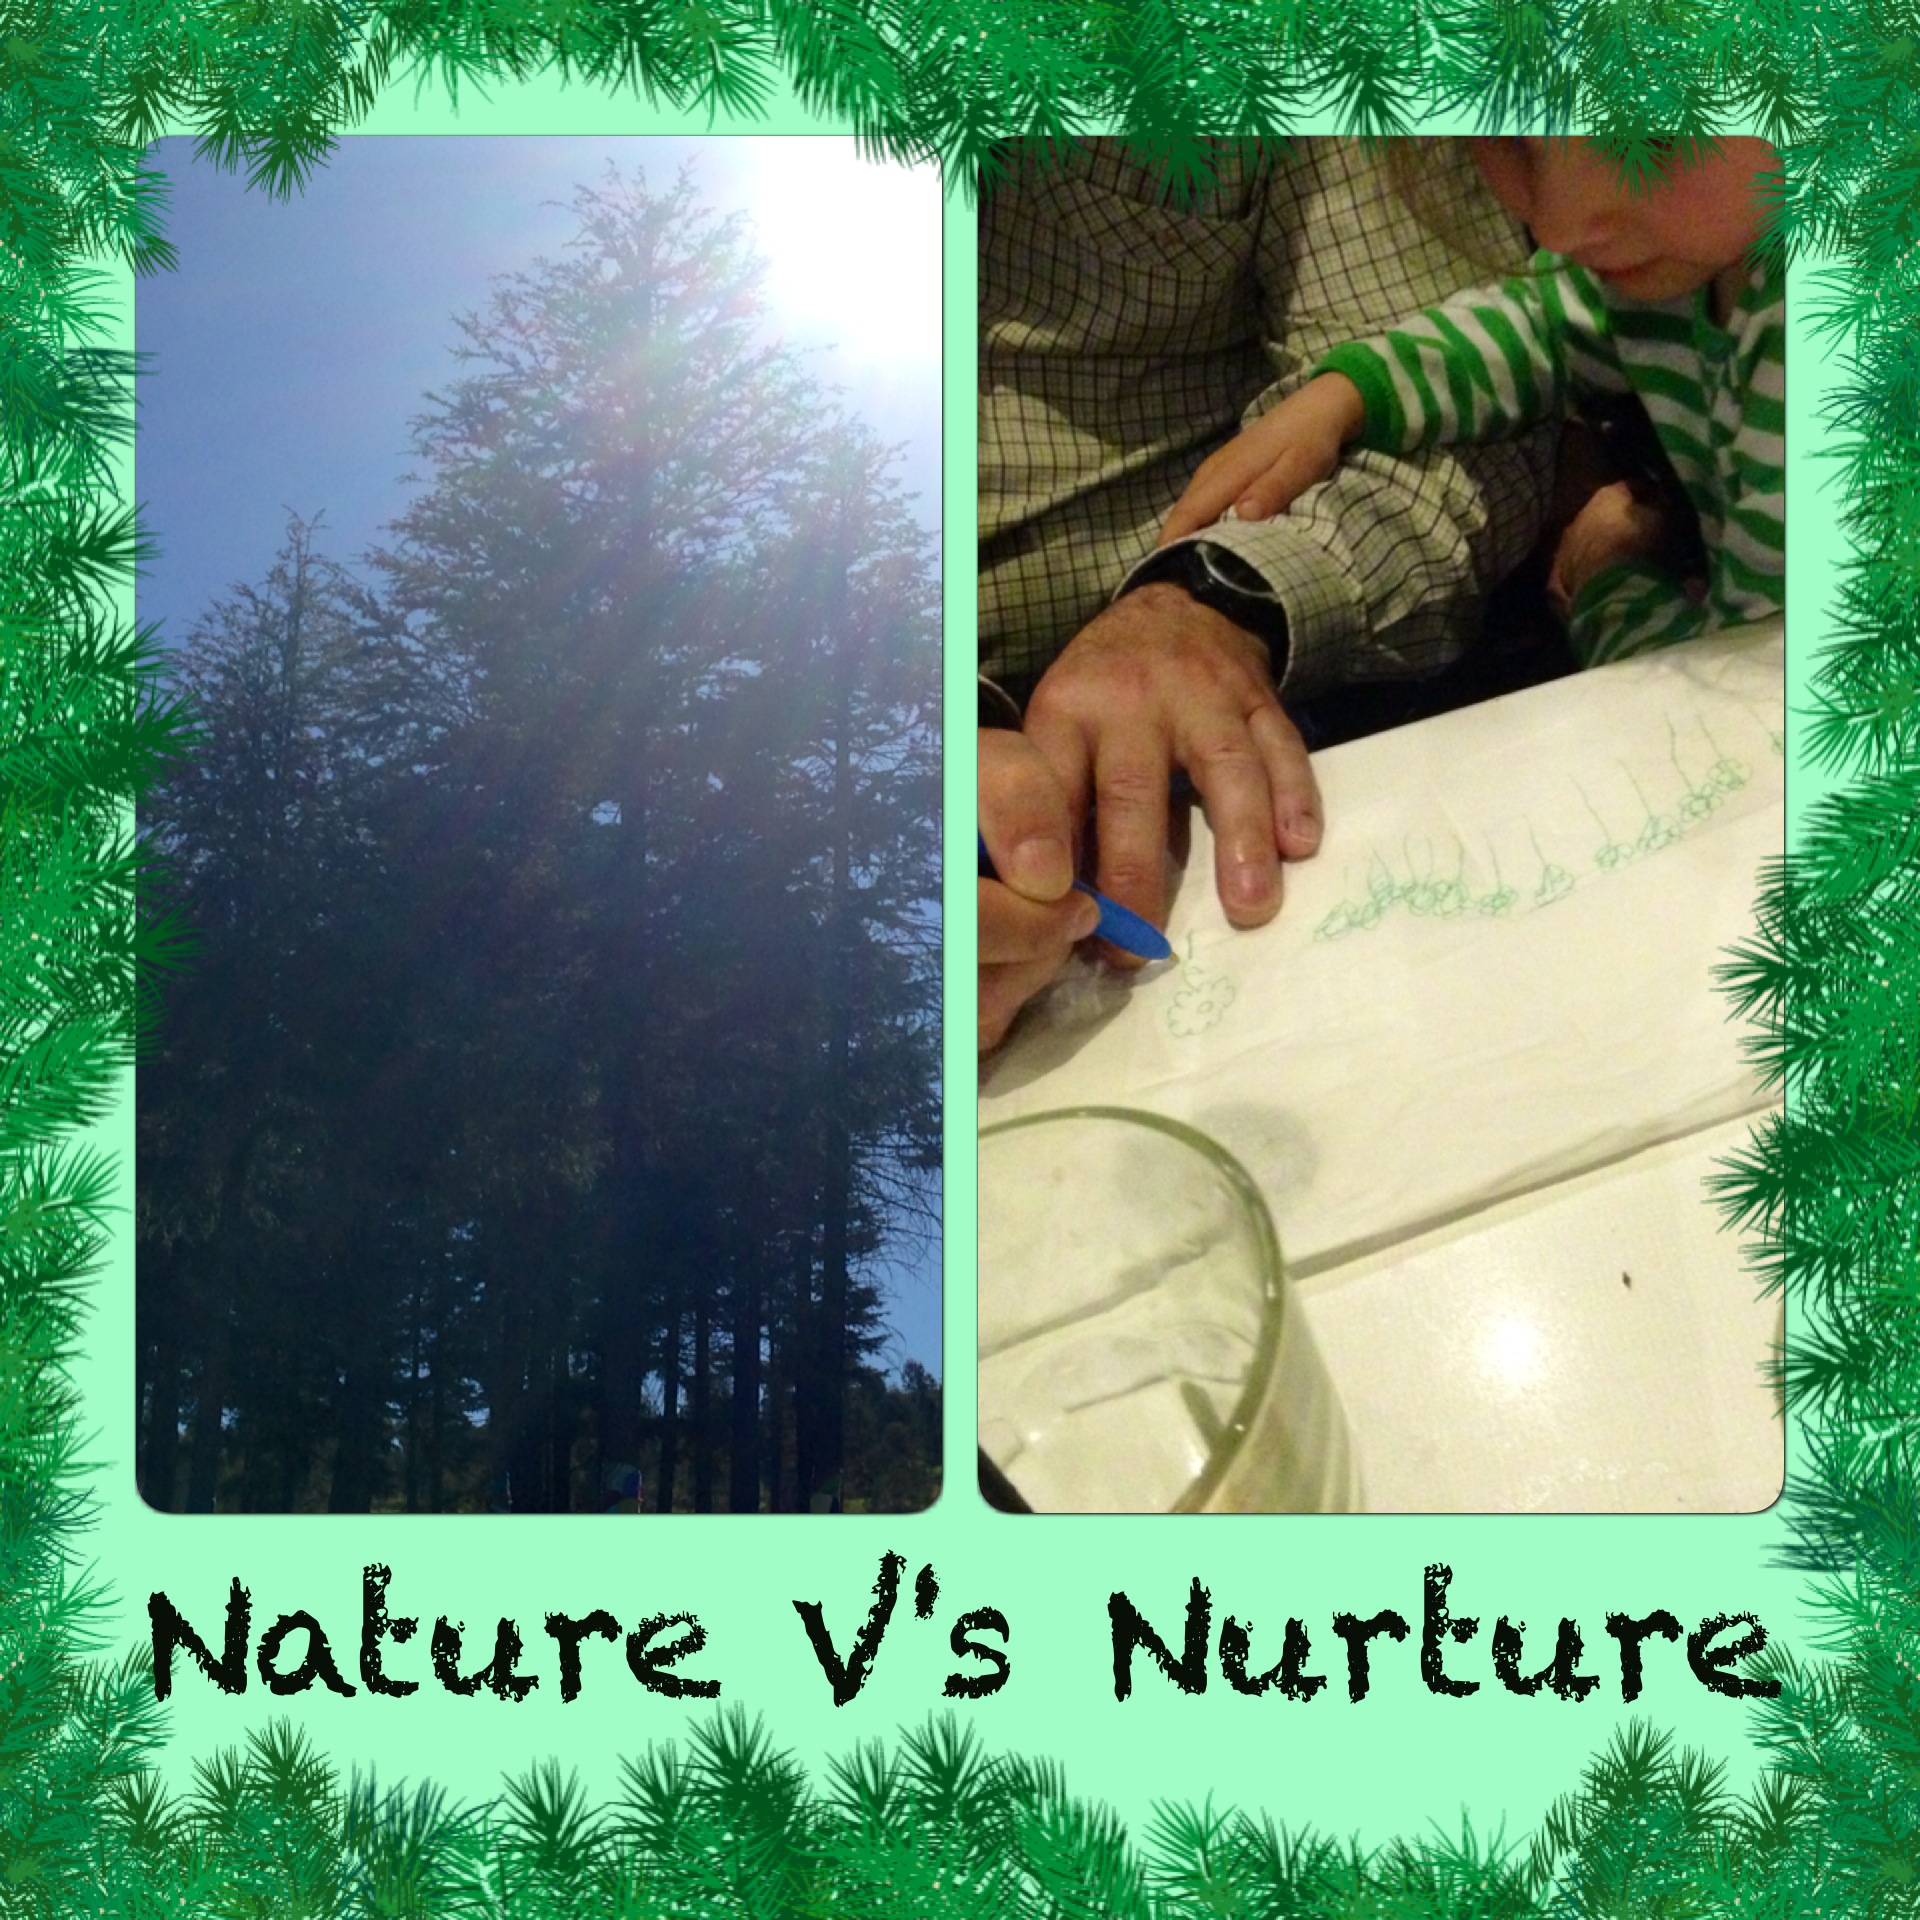 nature vs nurture addiction essay Nature vs nurture what causes drug and alcohol addiction is addiction a disease that a person can't control or is addiction a result of poor choices brought on.